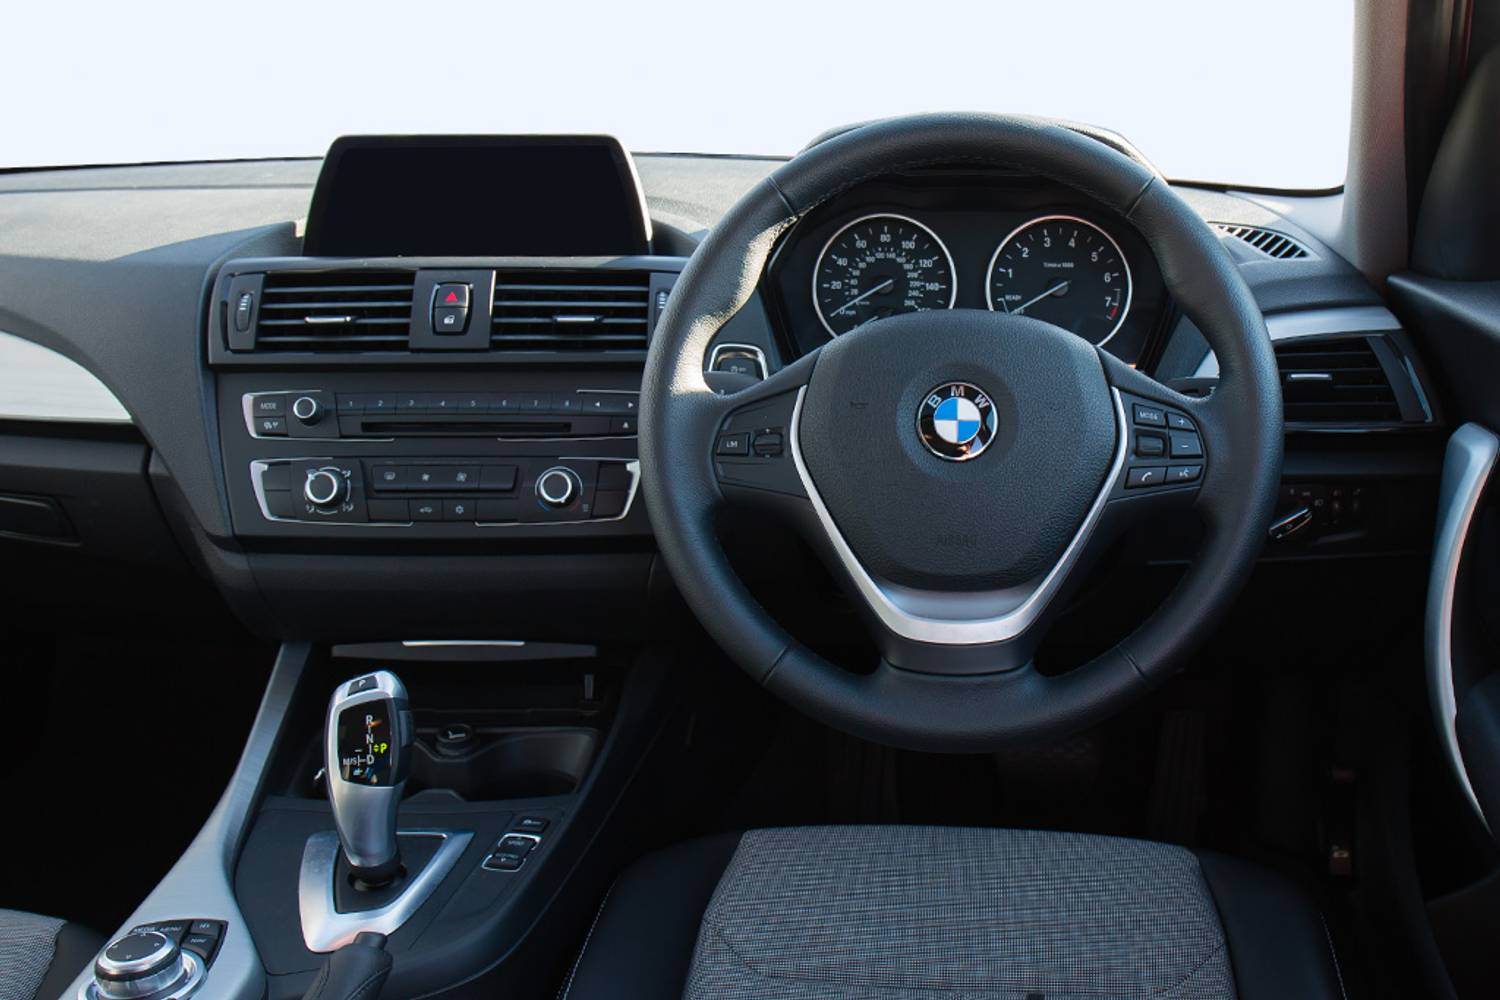 BMW 1 Series Hatchback 5dr interior